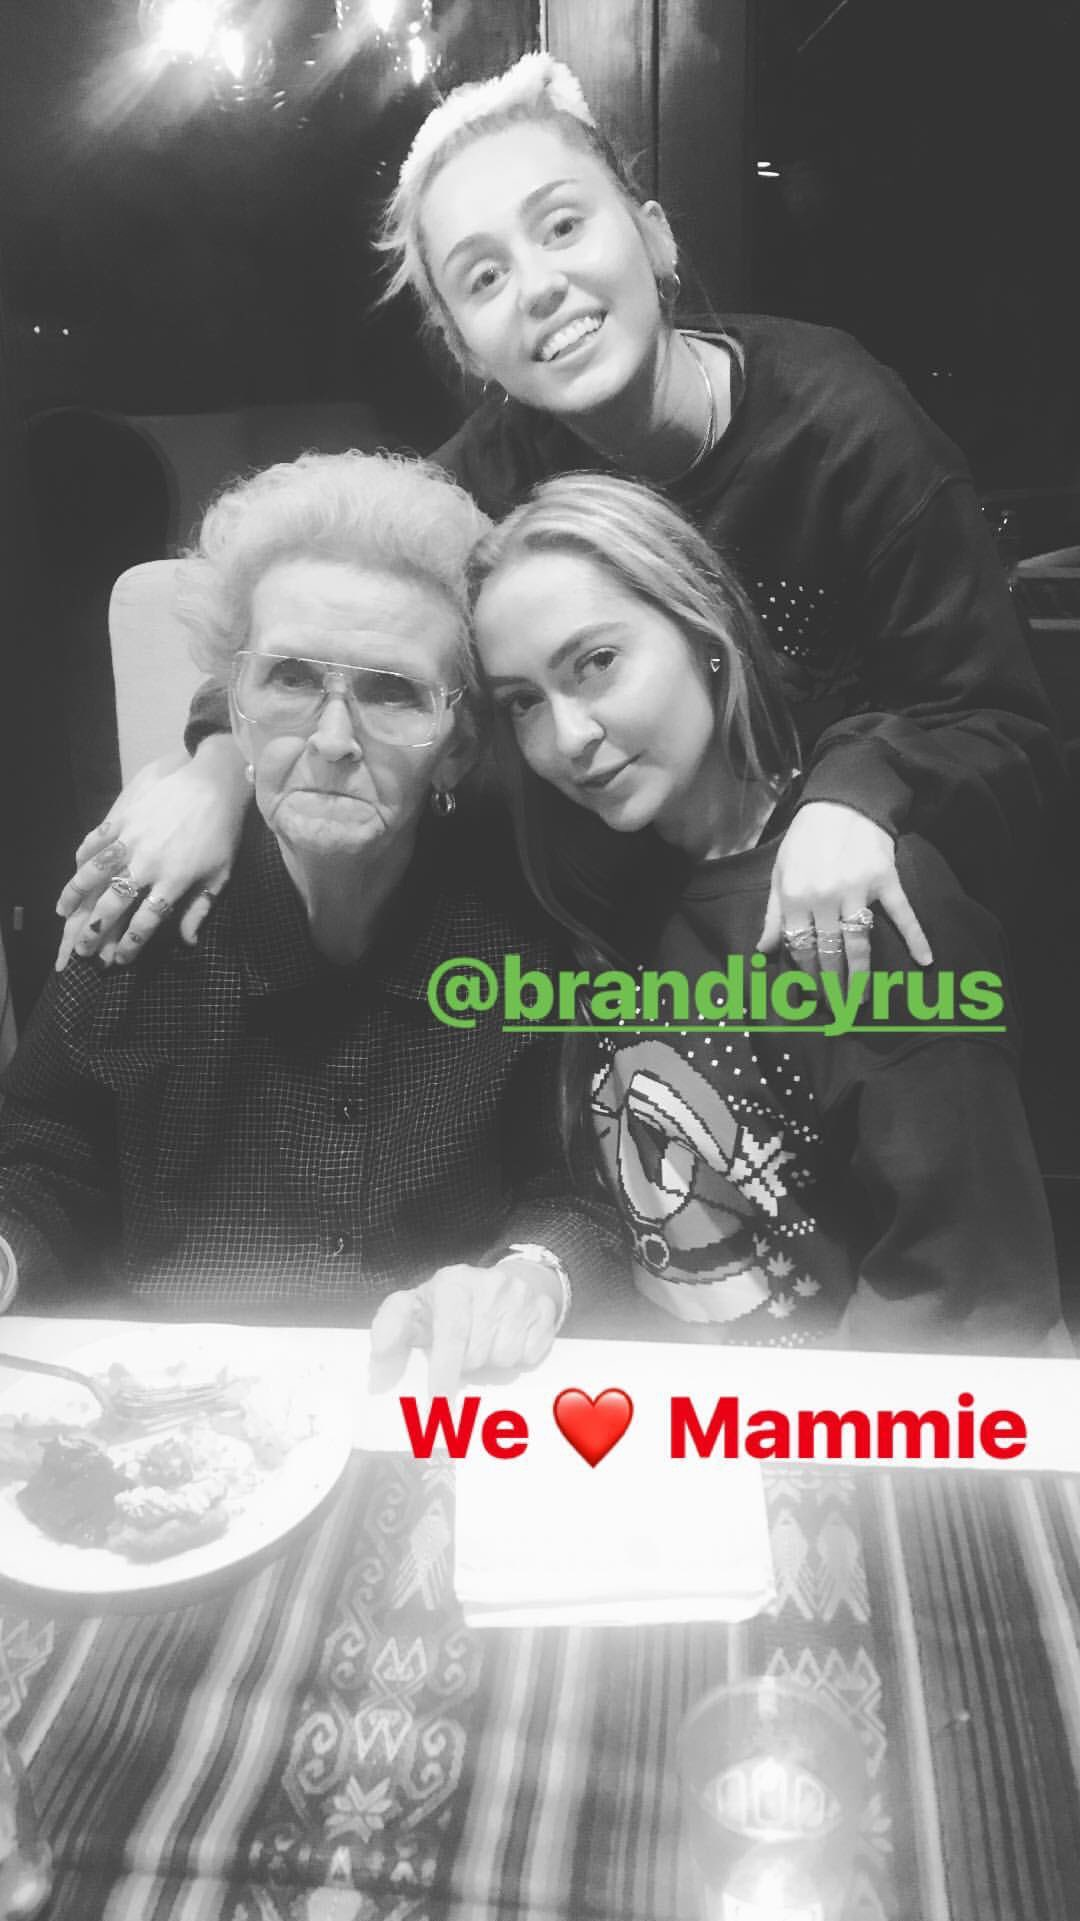 We ❤️ Mammie https://t.co/iw6O0xVk2z